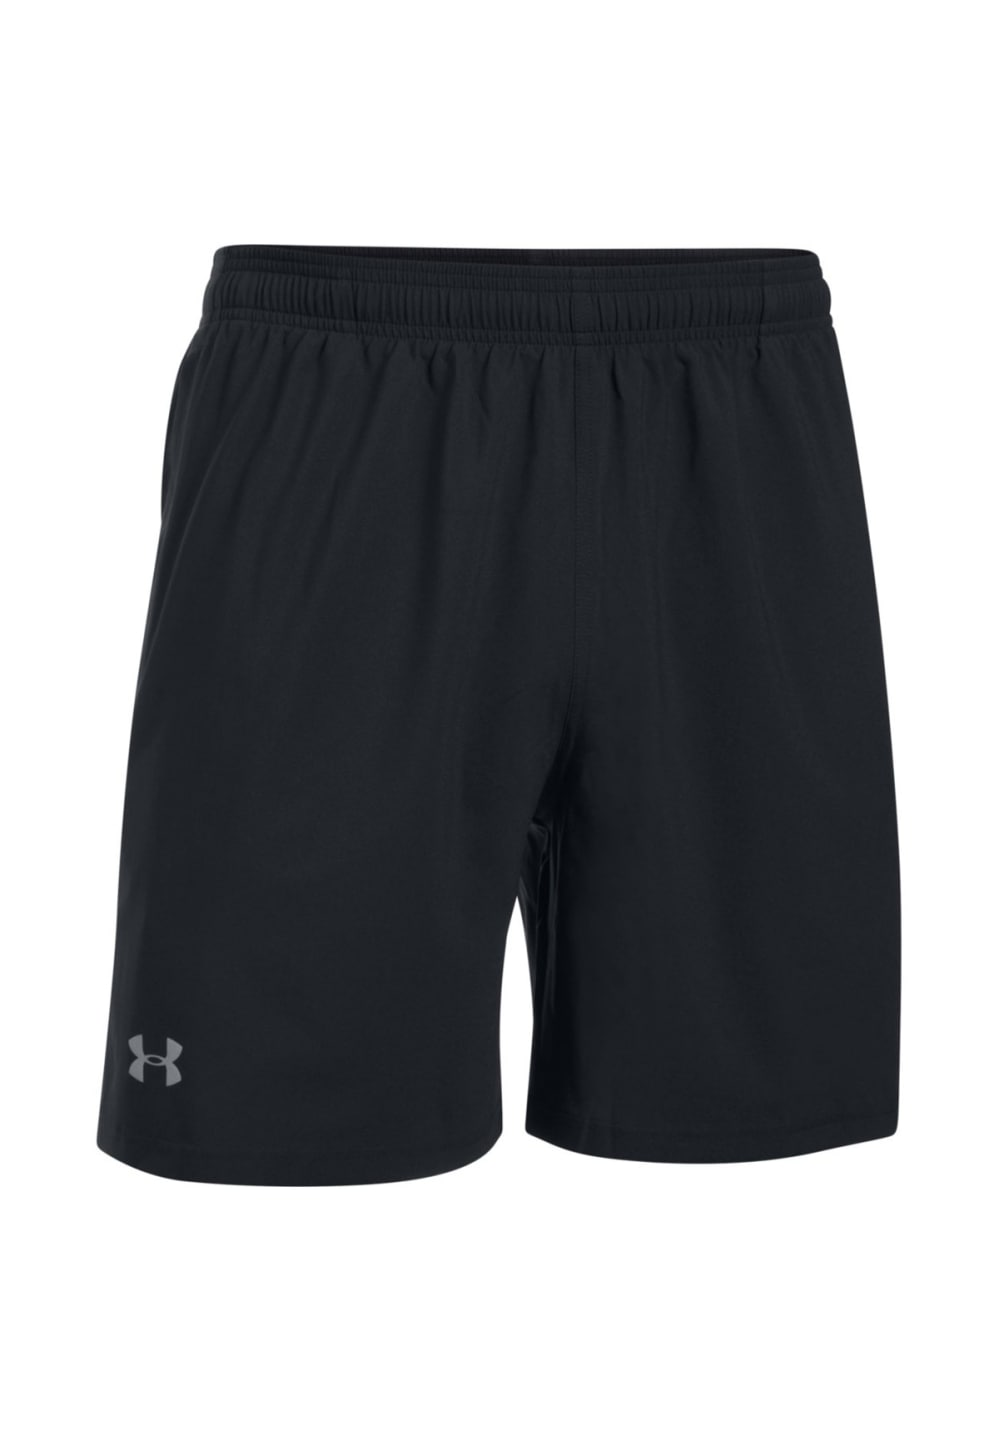 Under Armour Launch SW 7 Short Laufhosen Herren 46-48